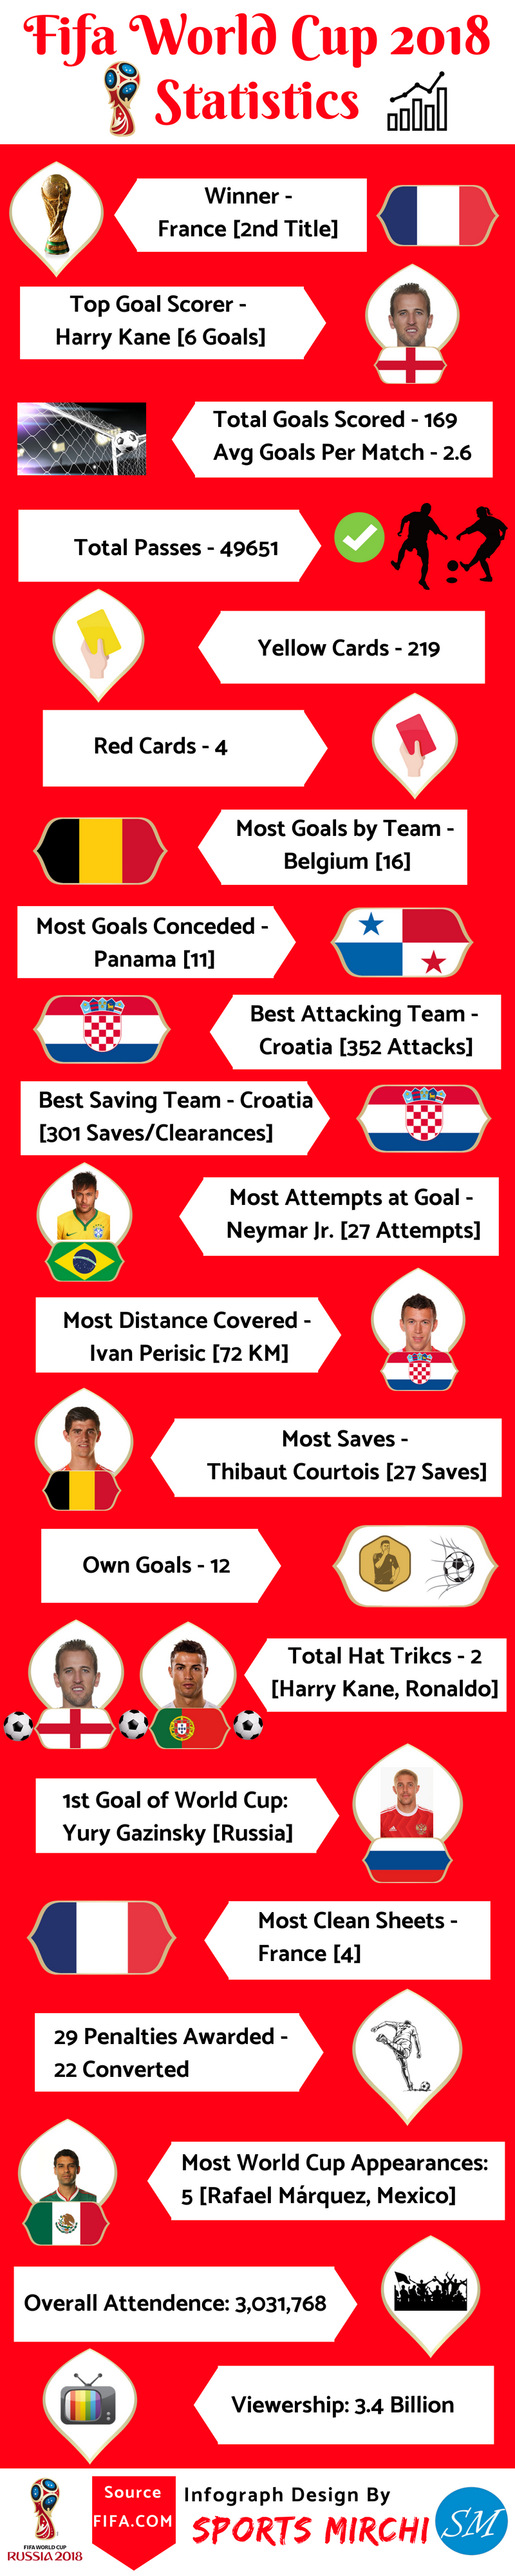 Final Stats from 2018 FIFA World Cup Russia